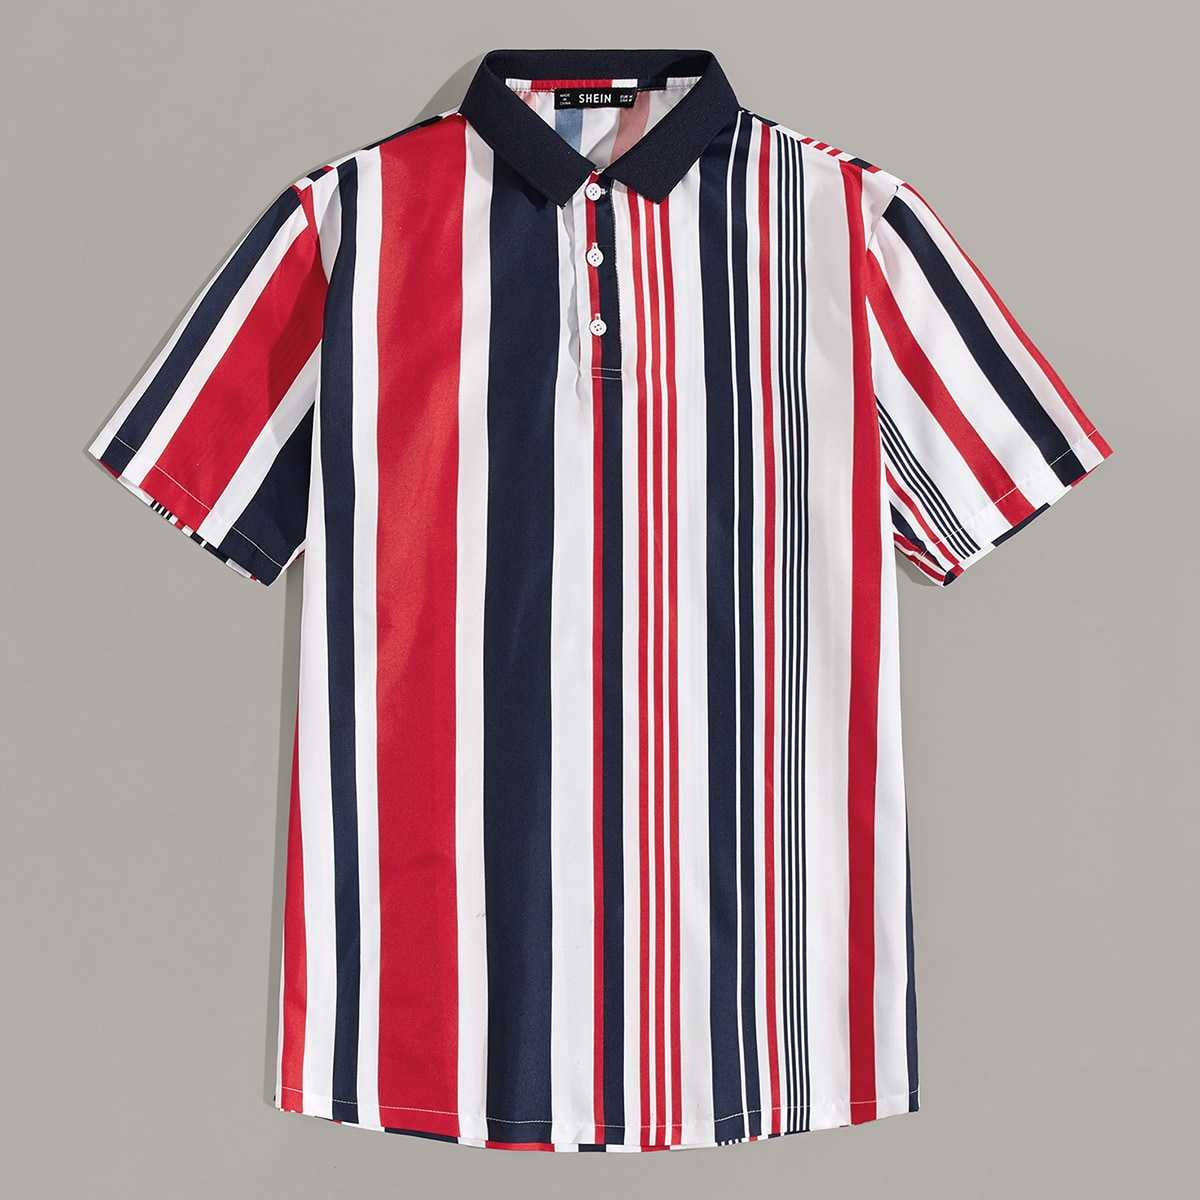 Guys Colorful Striped Polo Shirt in Multicolor by ROMWE on GOOFASH